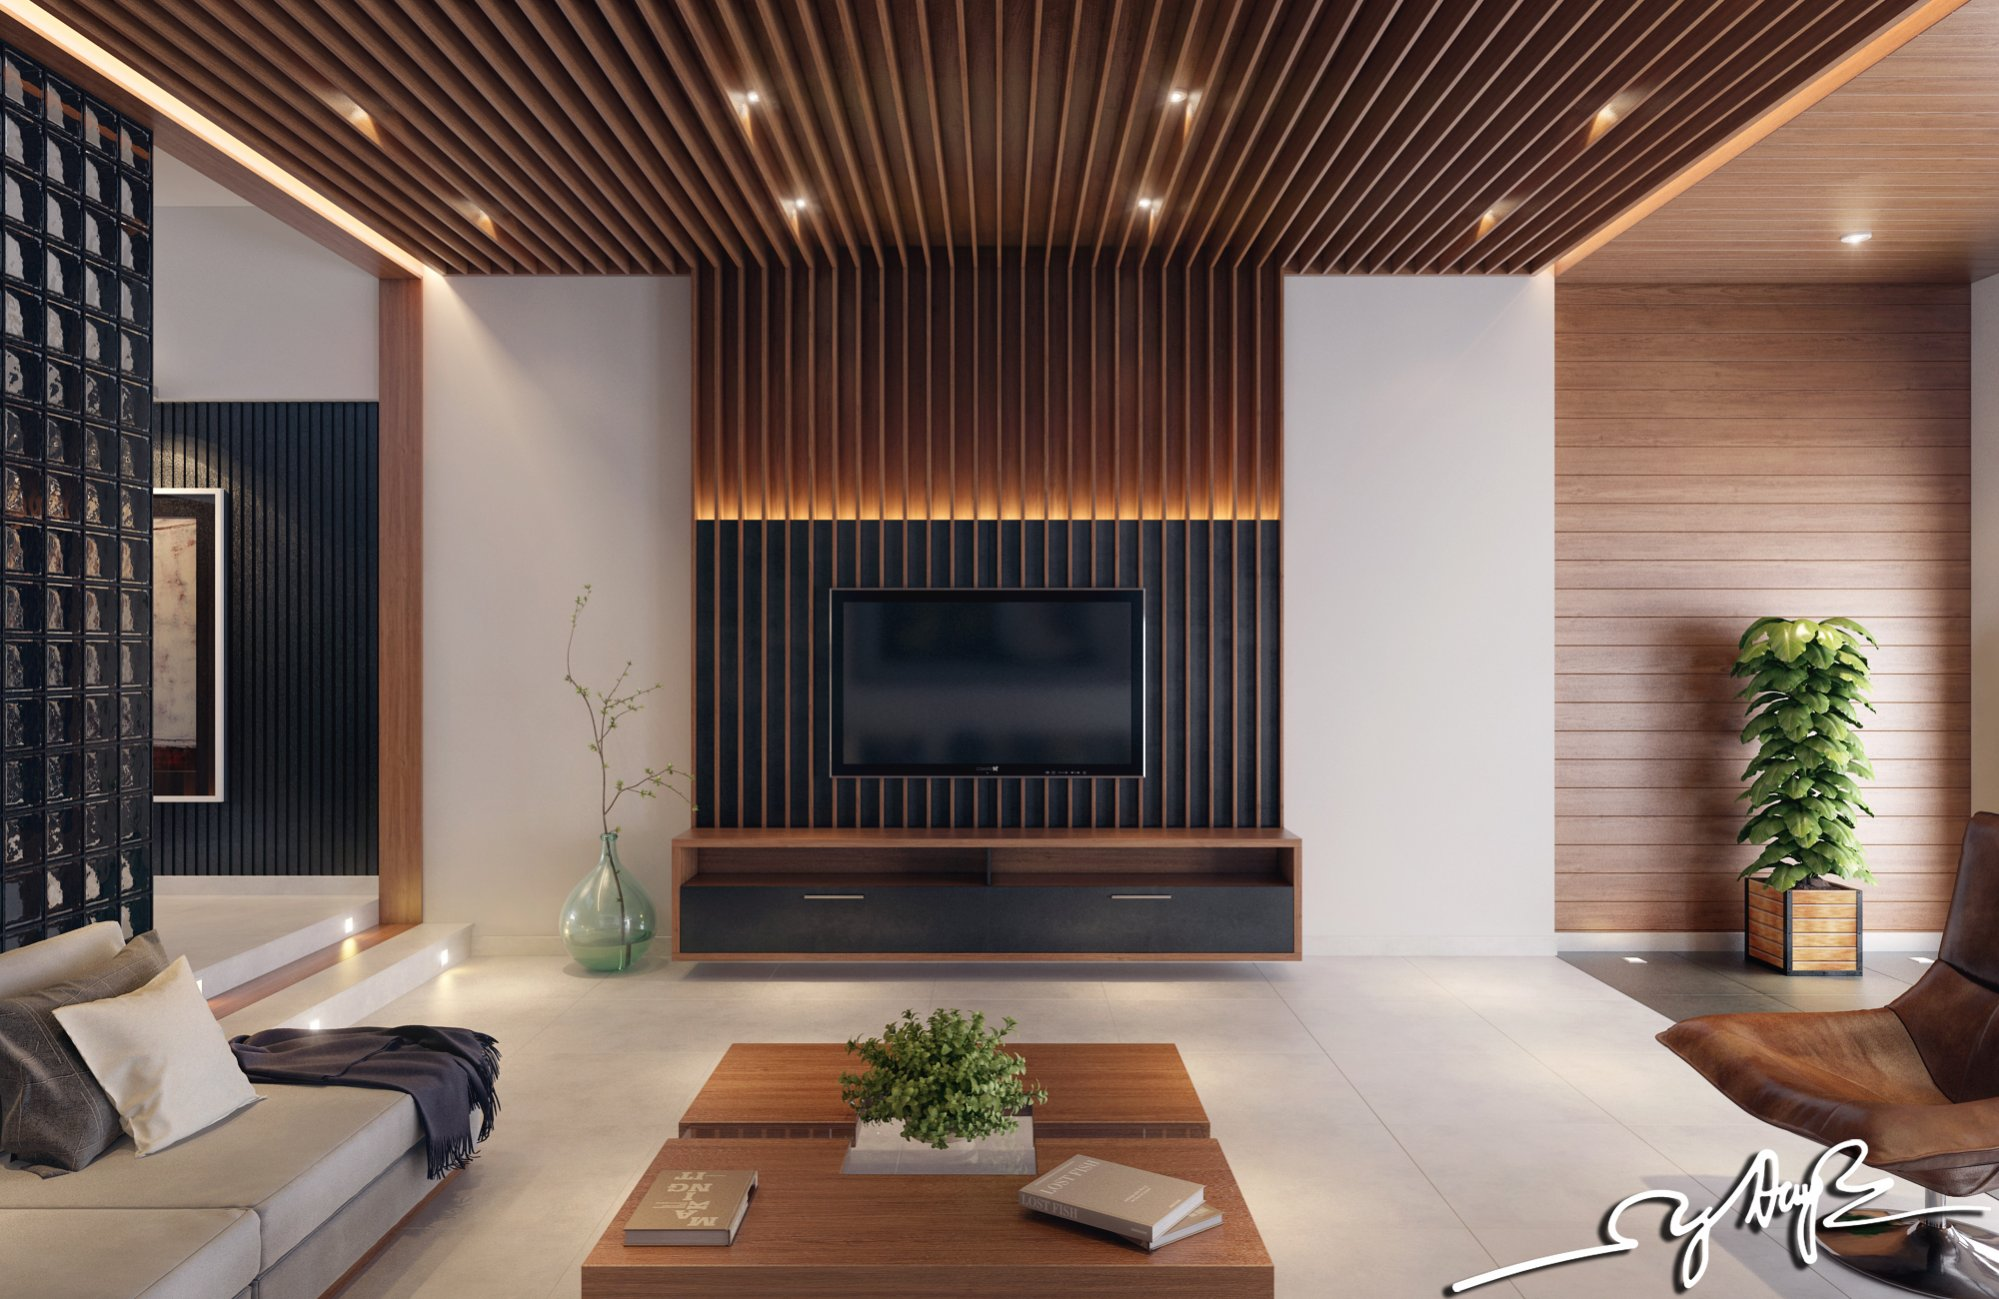 Interior design close to nature rich wood themes and for Wall design in hall